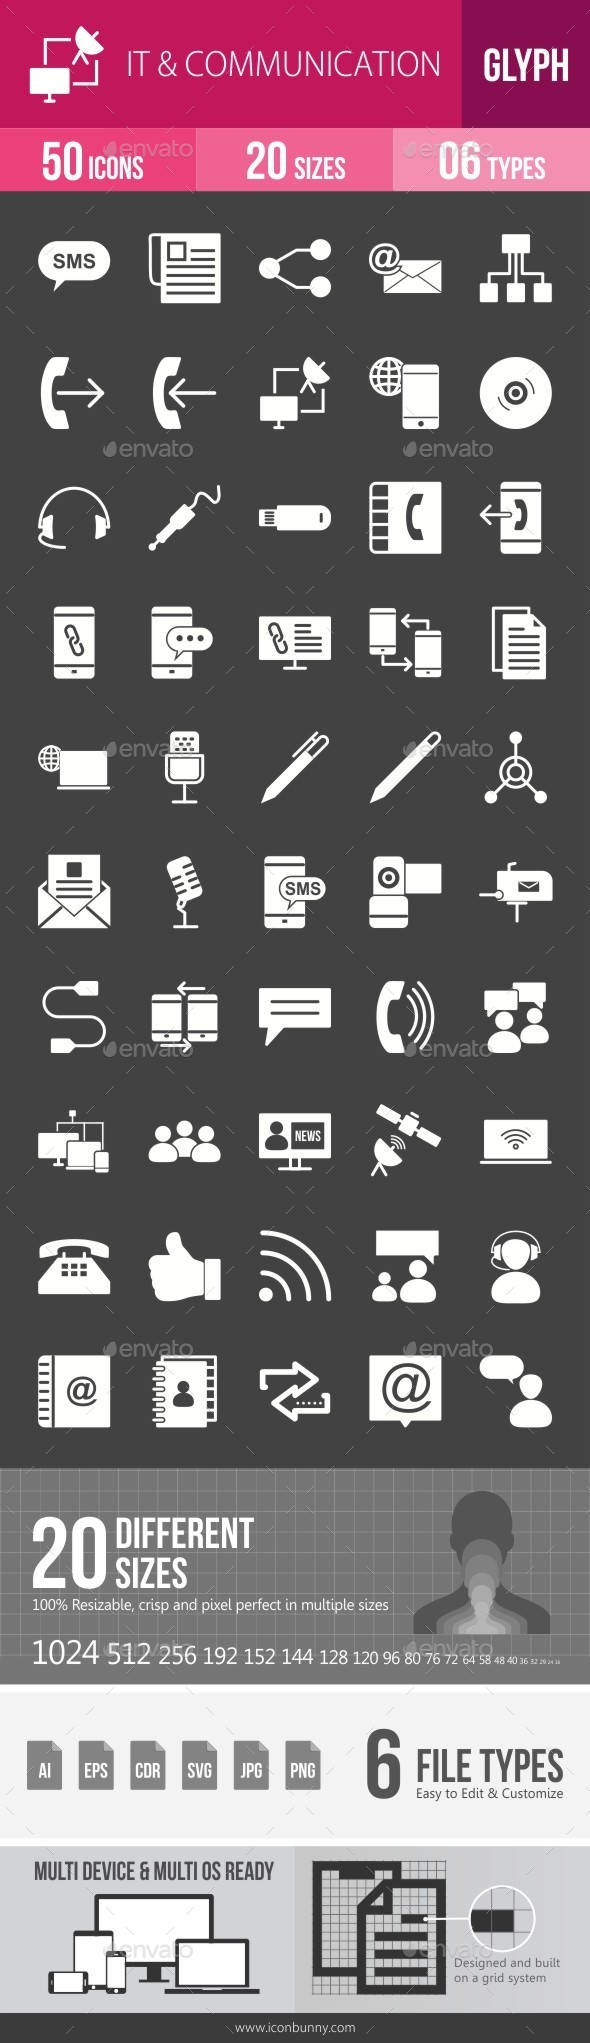 IT & Communication Glyph Inverted Icons - Icons